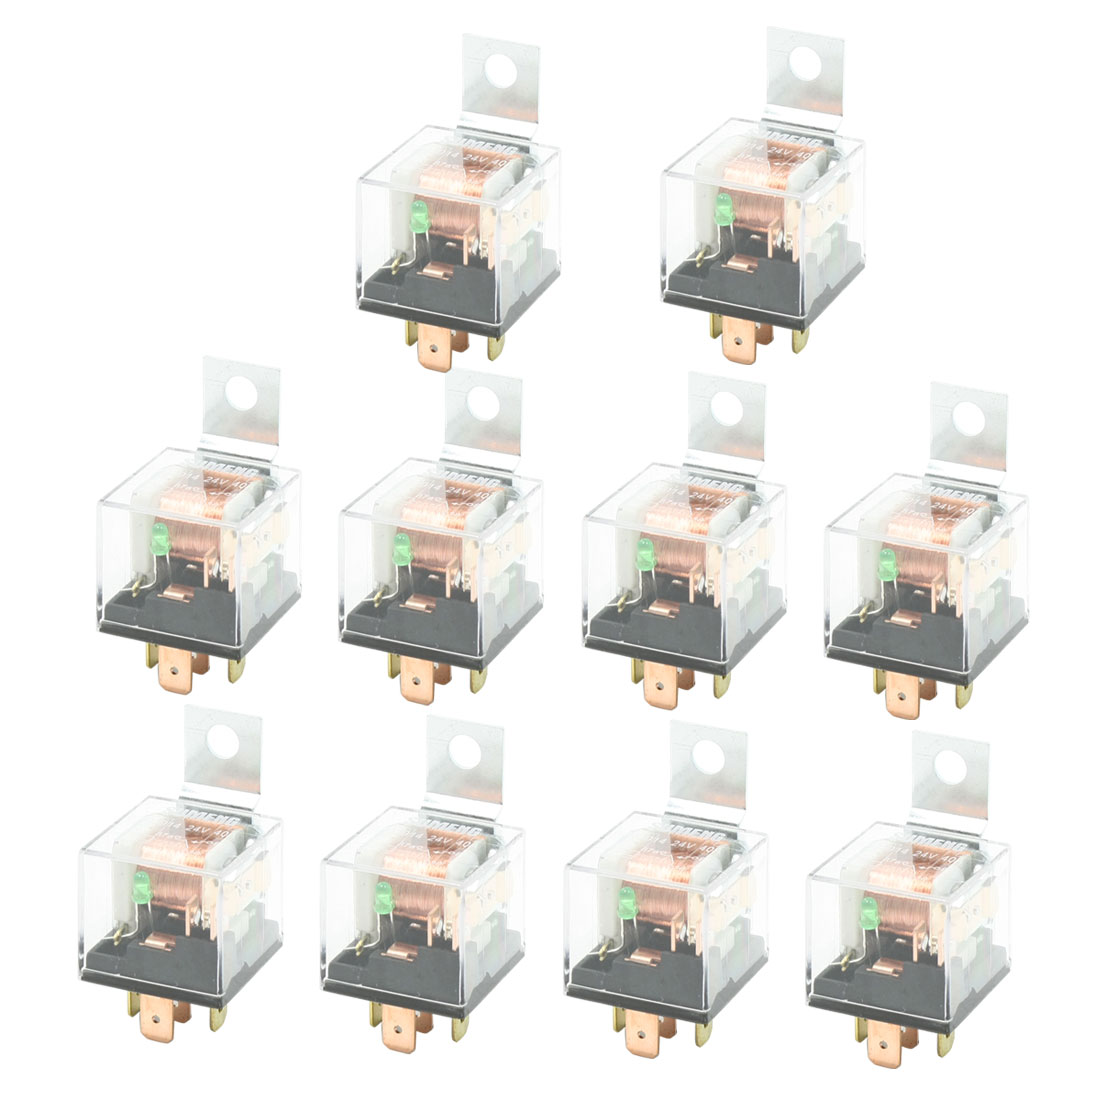 DC 24V 40A 1NC+1NO SPDT 5 Pin Green Light Pilot Lamp JD2914 Car Relay 10 Pcs